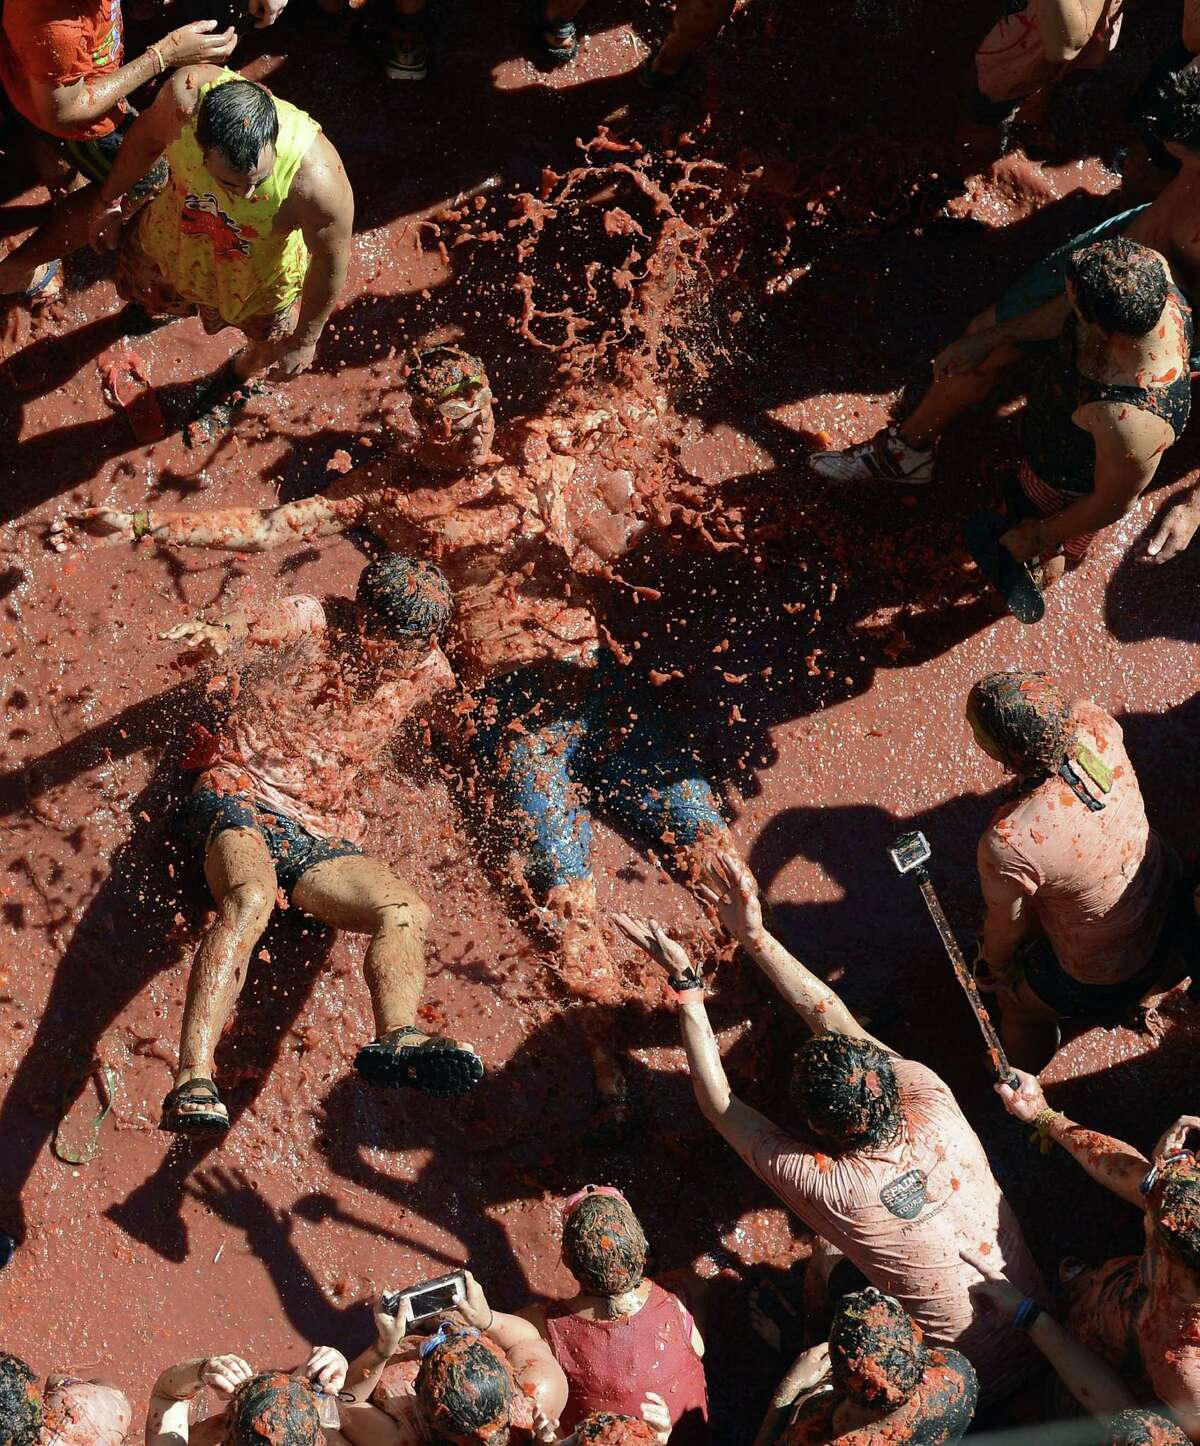 Revelers throw tomatoes while participating the annual La Tomatina festival on Wednesday, Aug. 27, 2014, in Bunol district of Valencia, Spain.